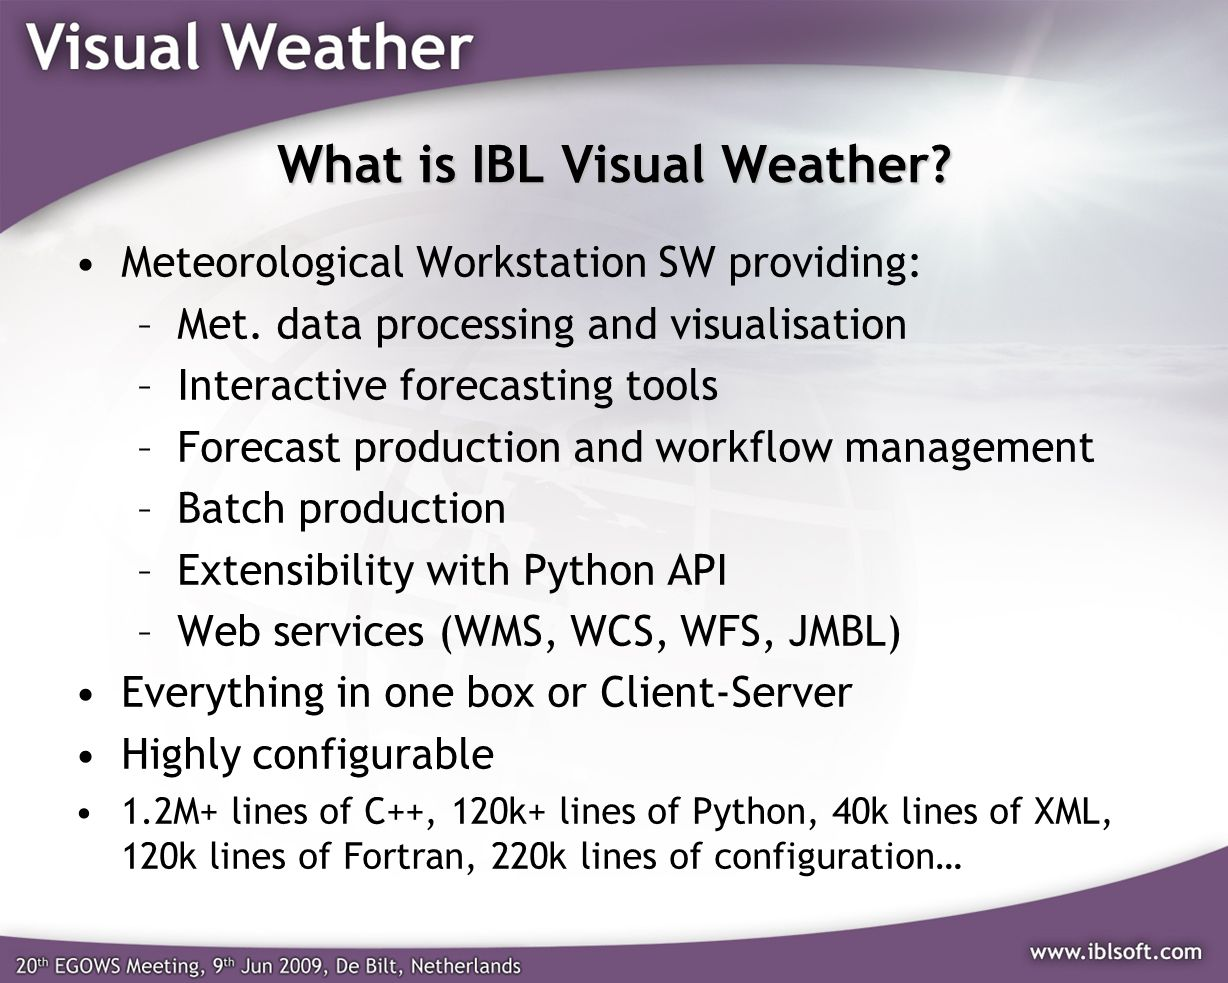 What is IBL Visual Weather